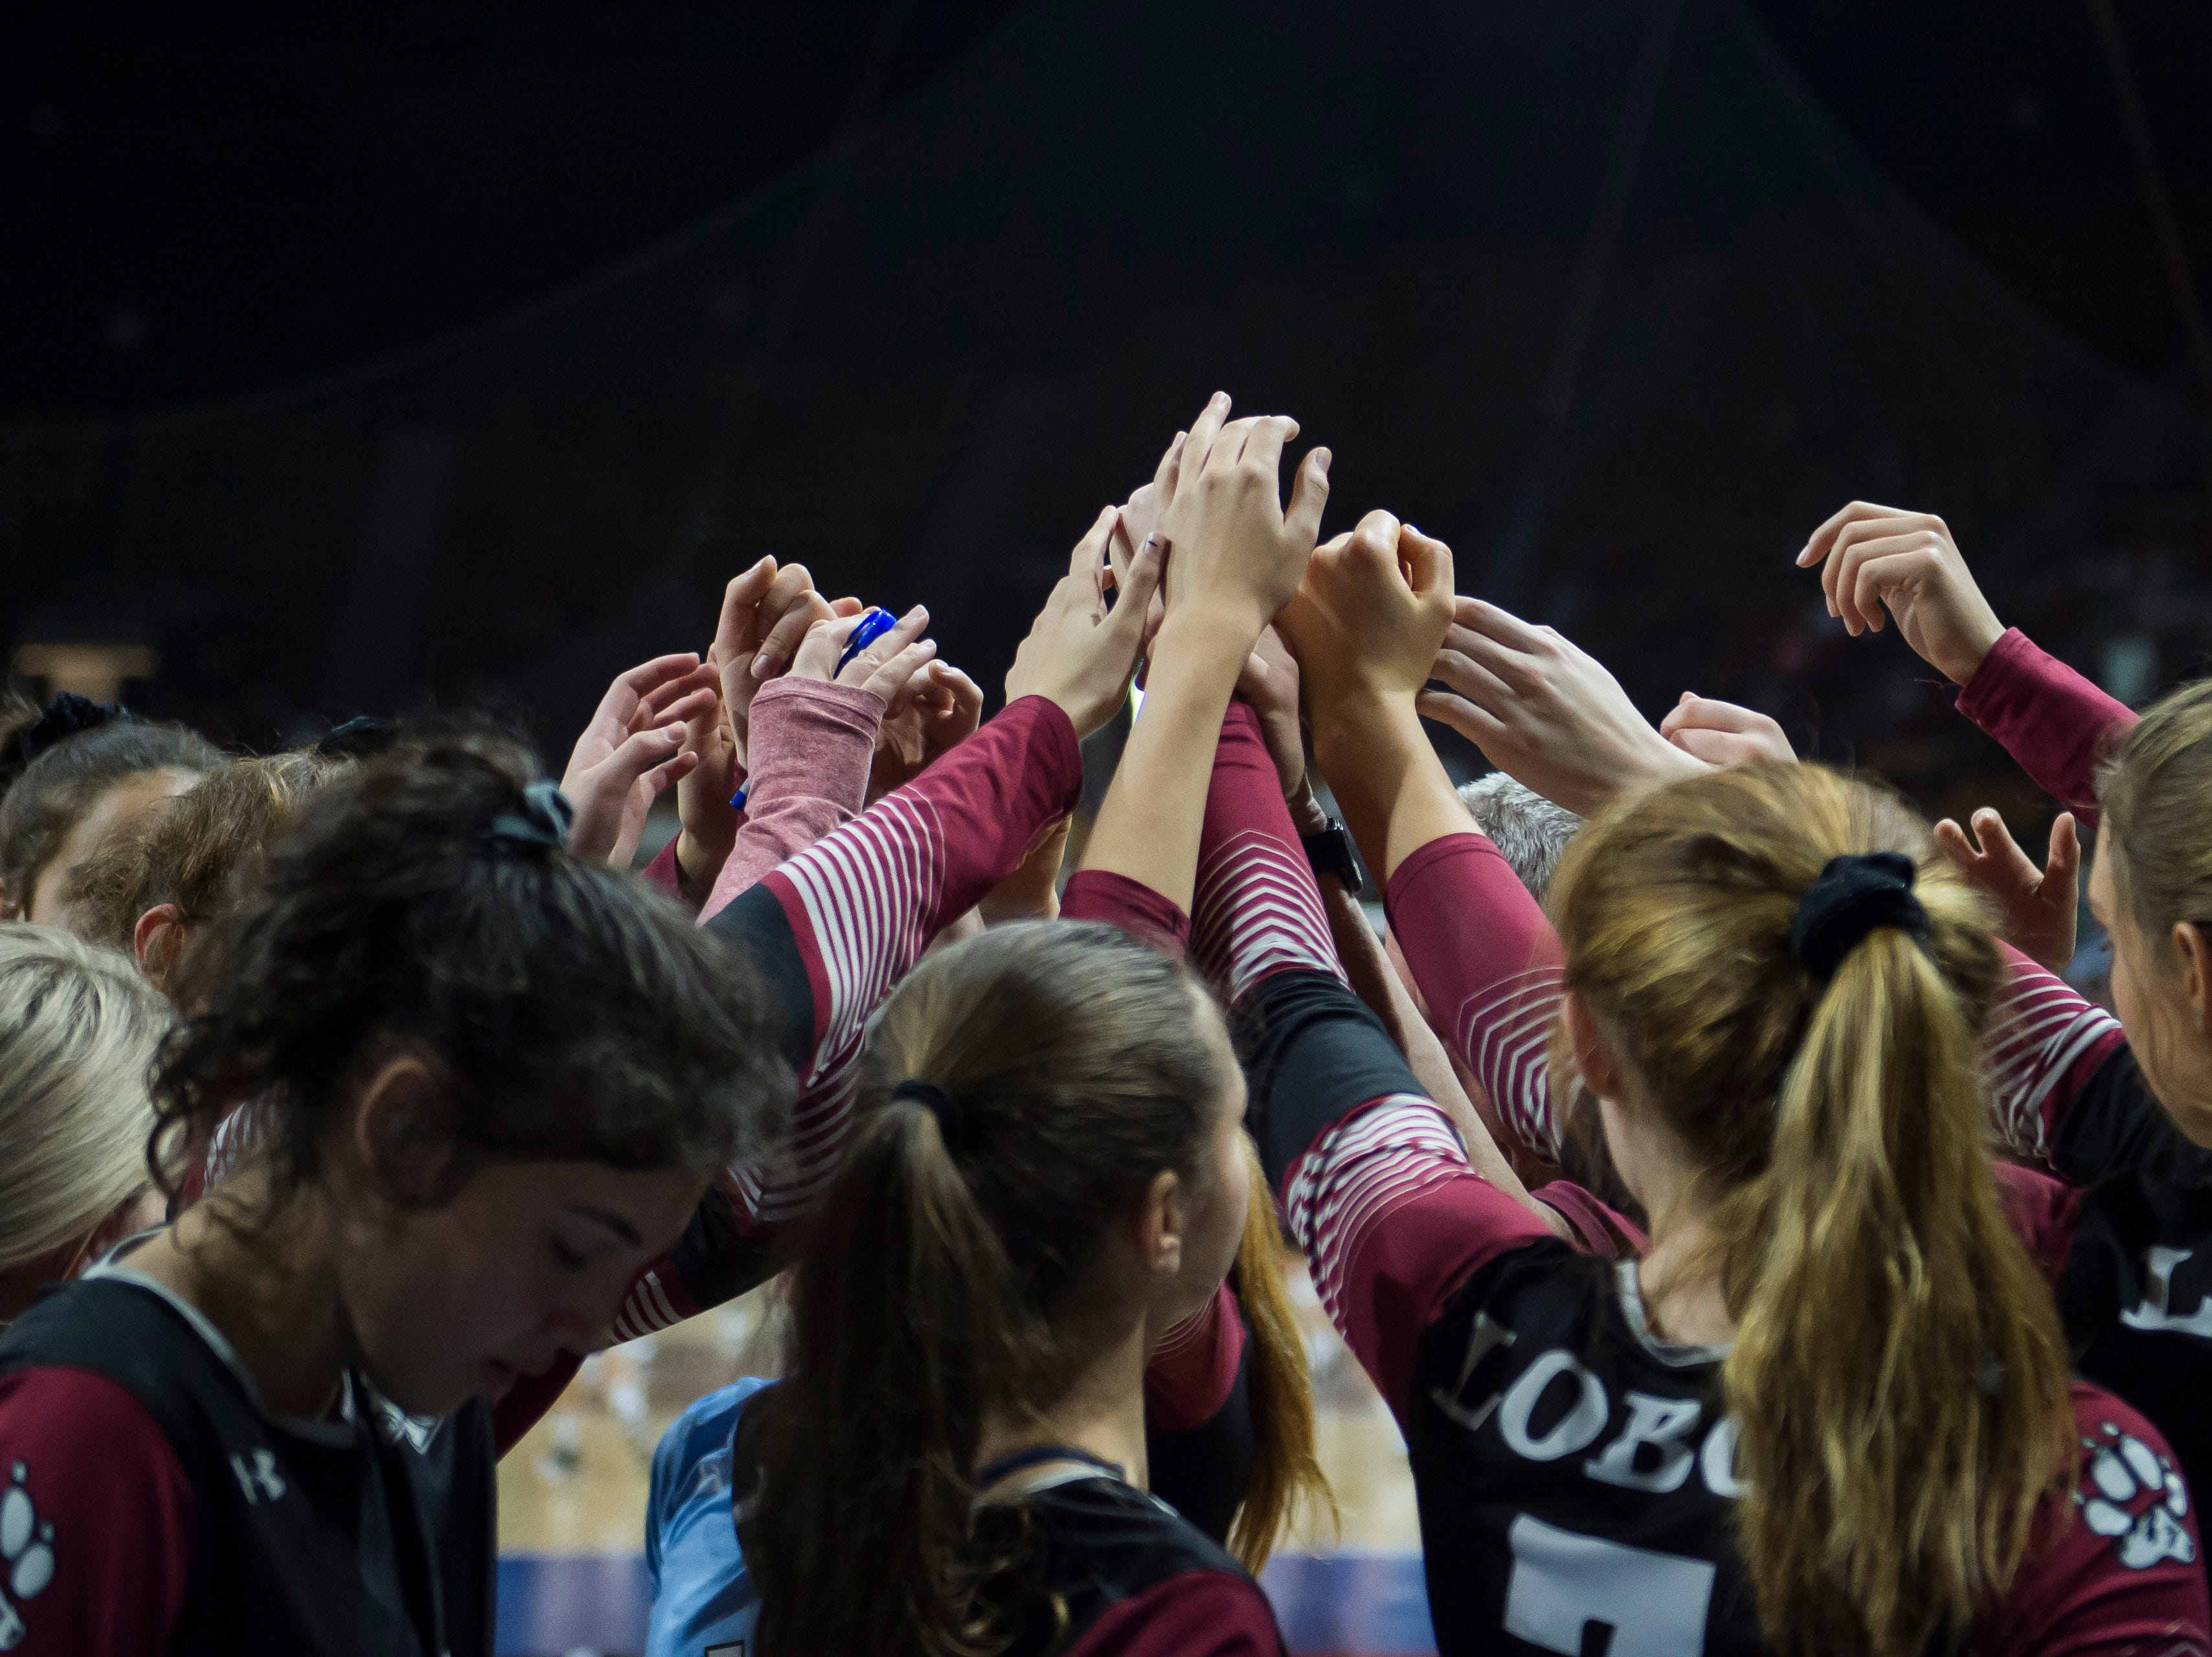 The Rocky Mountain High School volleyball team huddles up during a first round state game against Eaglecrest on Thursday, Nov. 8, 2018, at the Denver Coliseum in Denver, Colo.